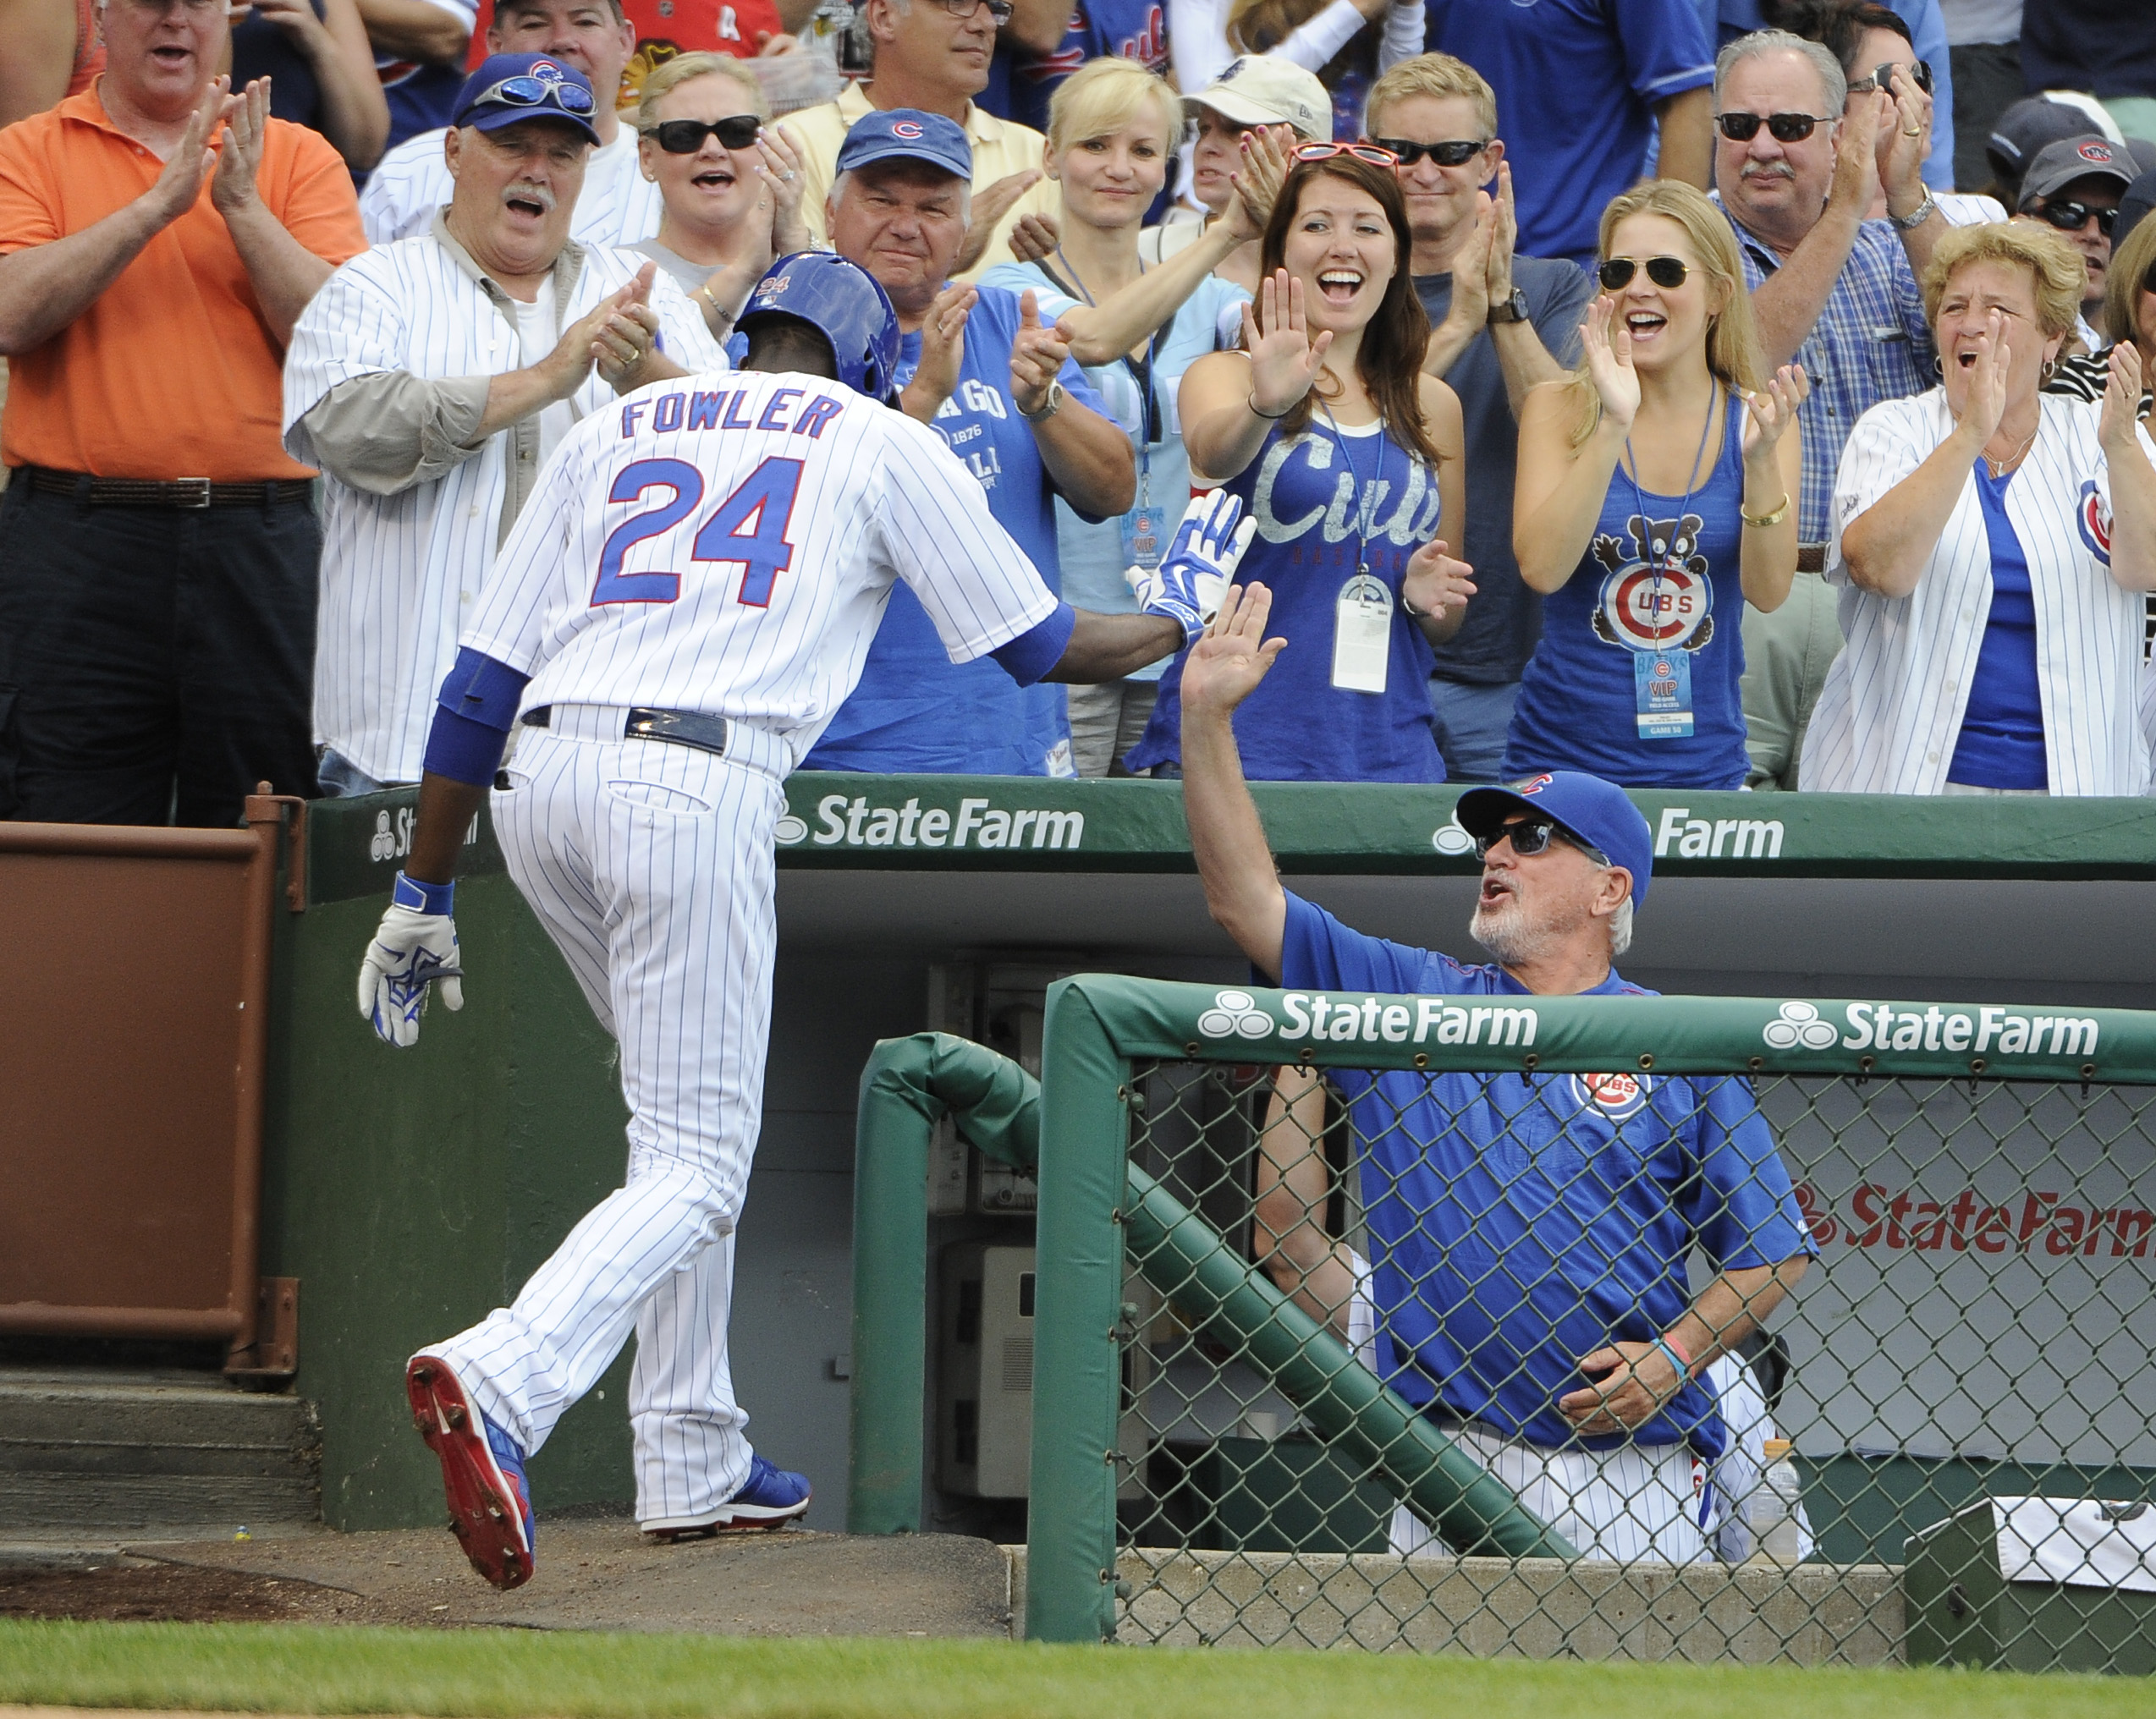 Maddon's rah-rah positivity is driven by an appreciation for how difficult baseball is to play at the highest level.